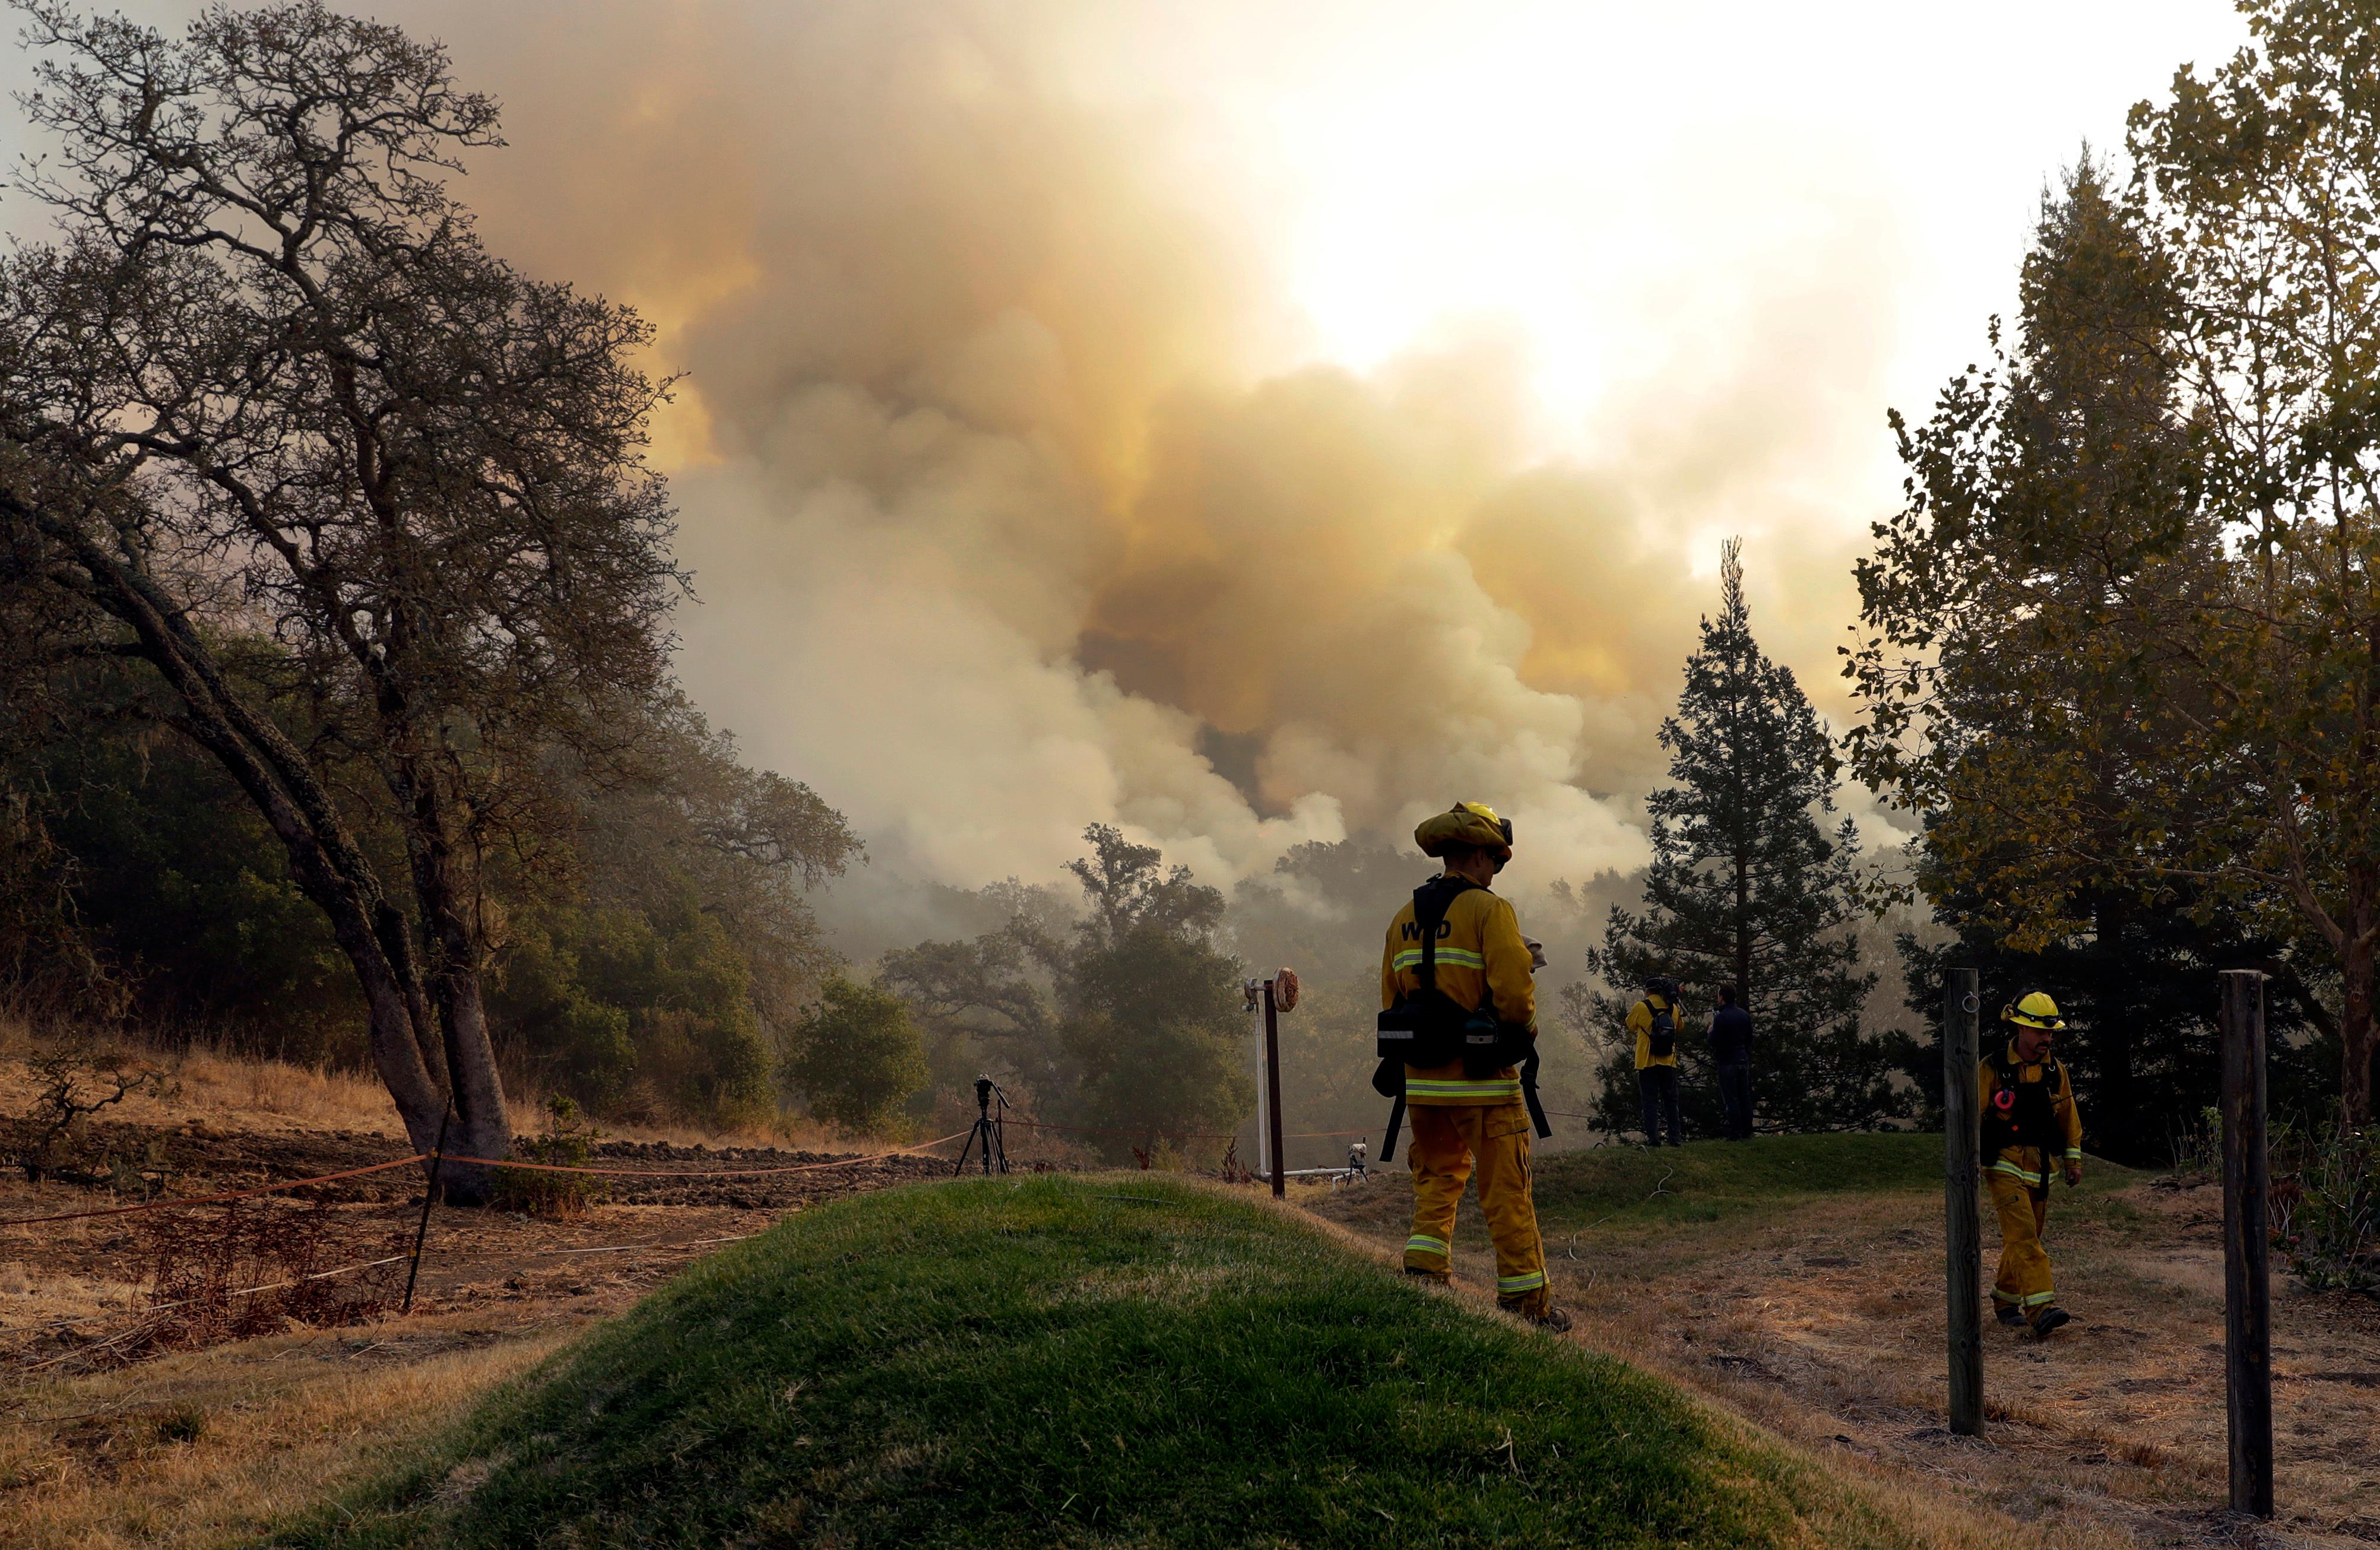 Firefighters walk along a containment line as a wildfire burns Saturday, Oct. 14, 2017, in Sonoma, Calif. (AP Photo/Marcio Jose Sanchez)